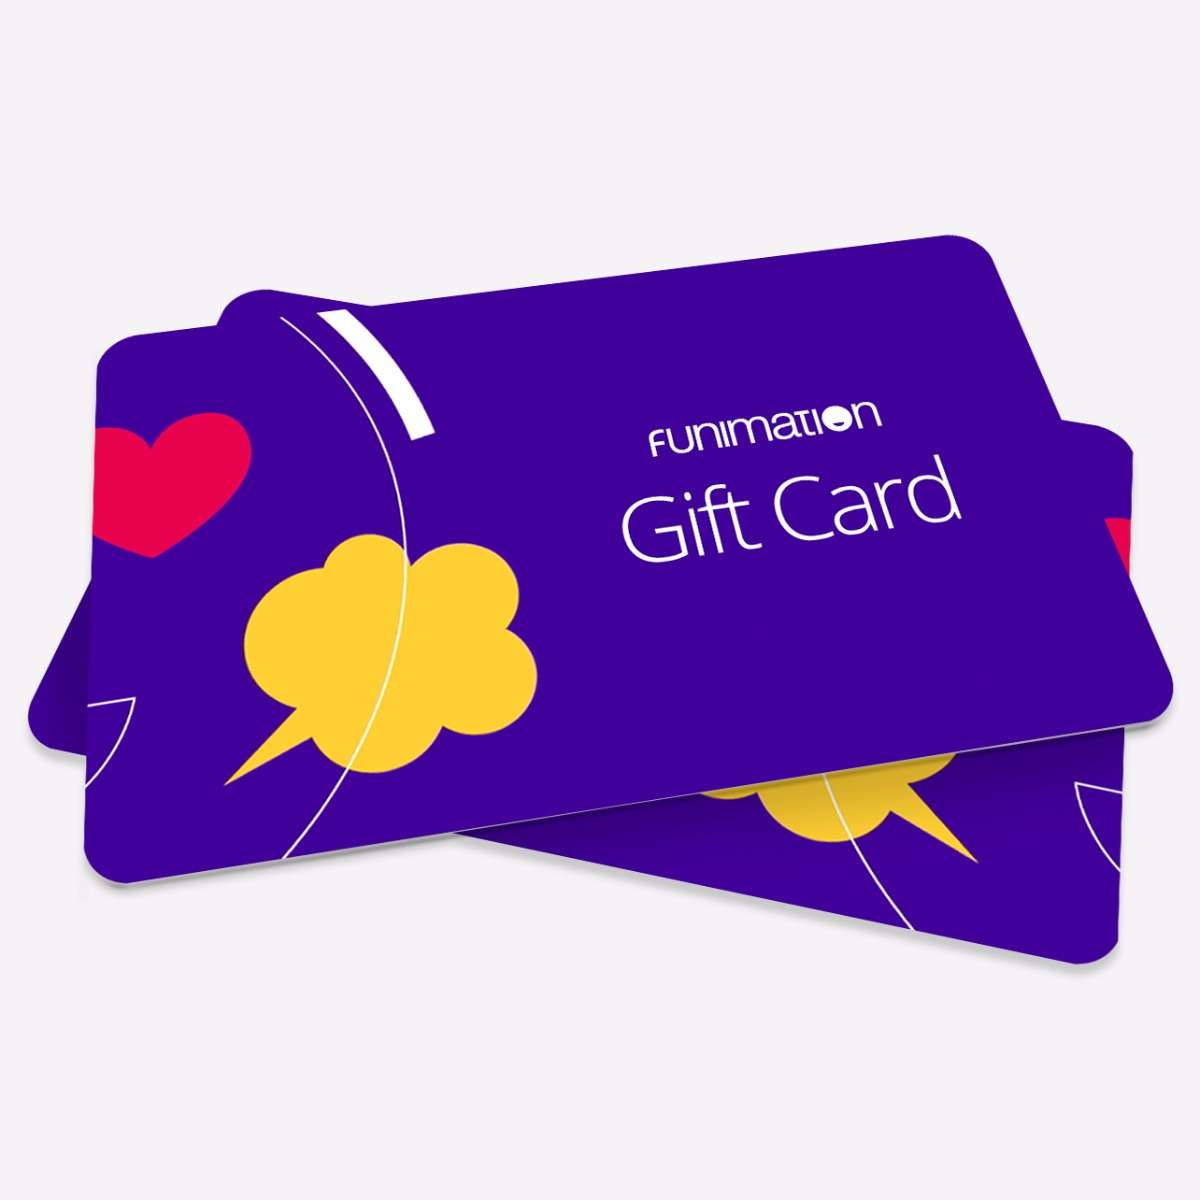 Anime Gift Certificates Cards For Him Her At Funimation